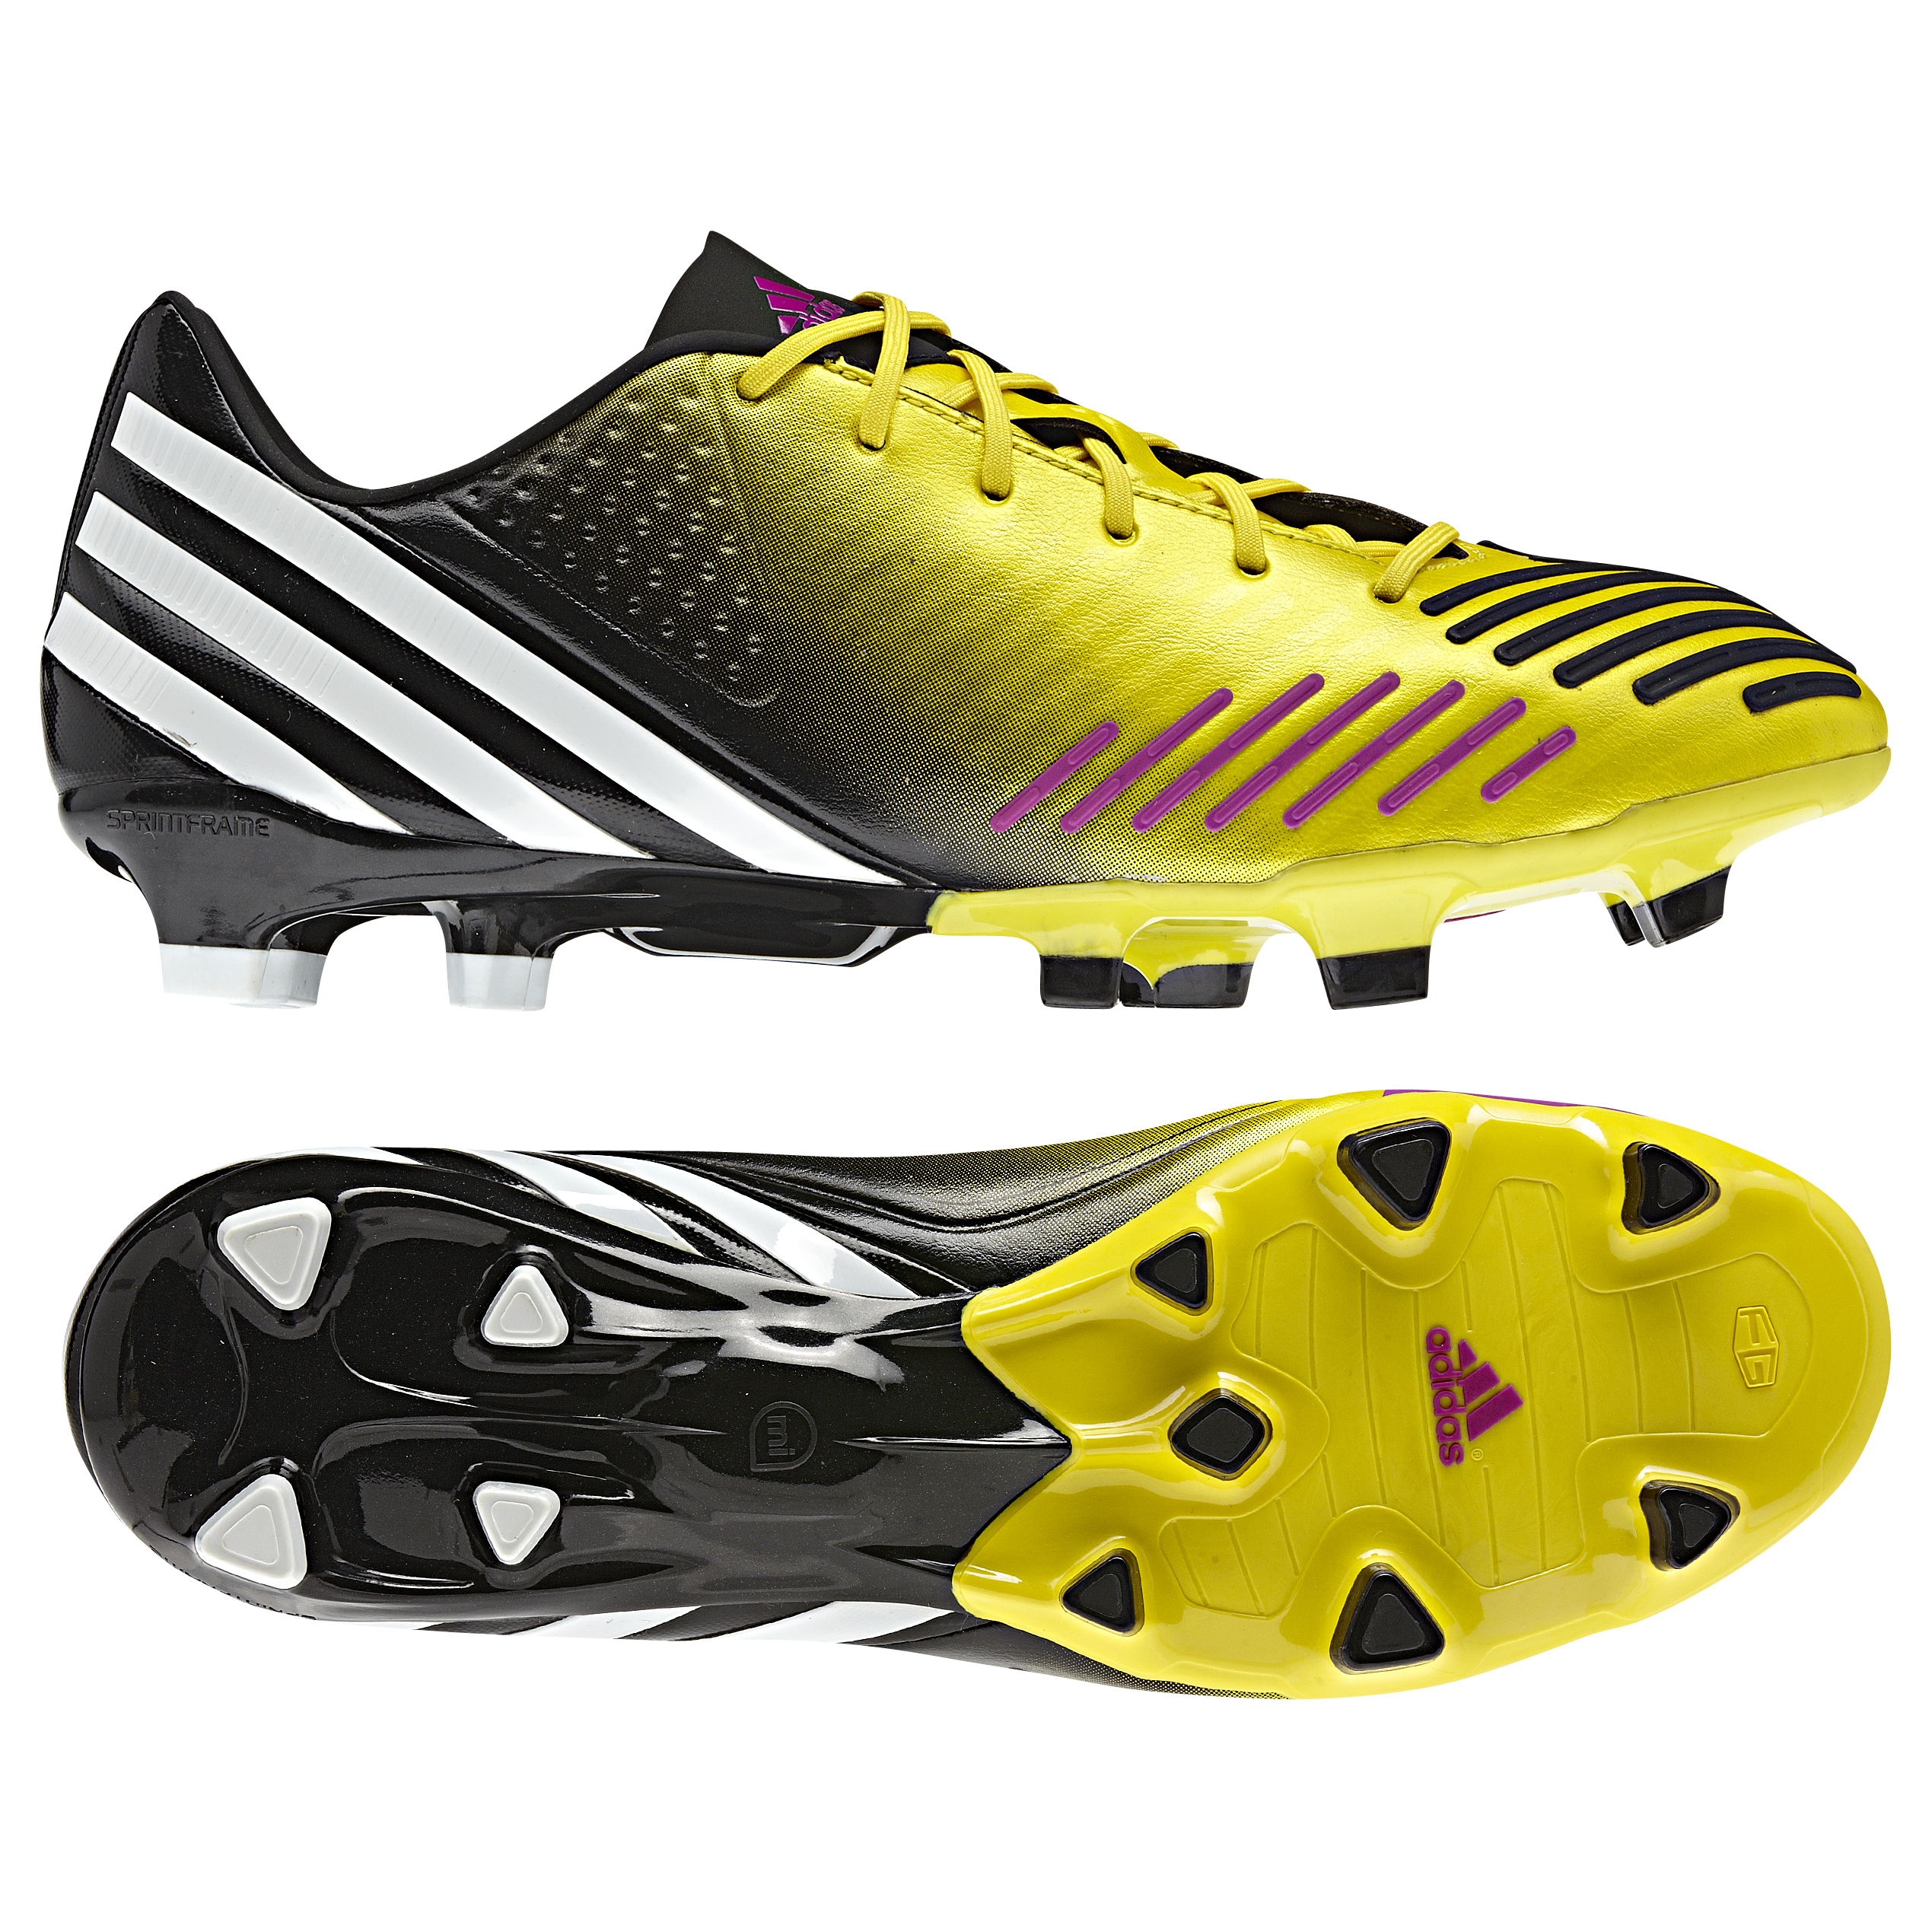 adidas Predator LZ TRX Firm Ground Football Boots - Vivid Yellow/Running White/Vivid Pink